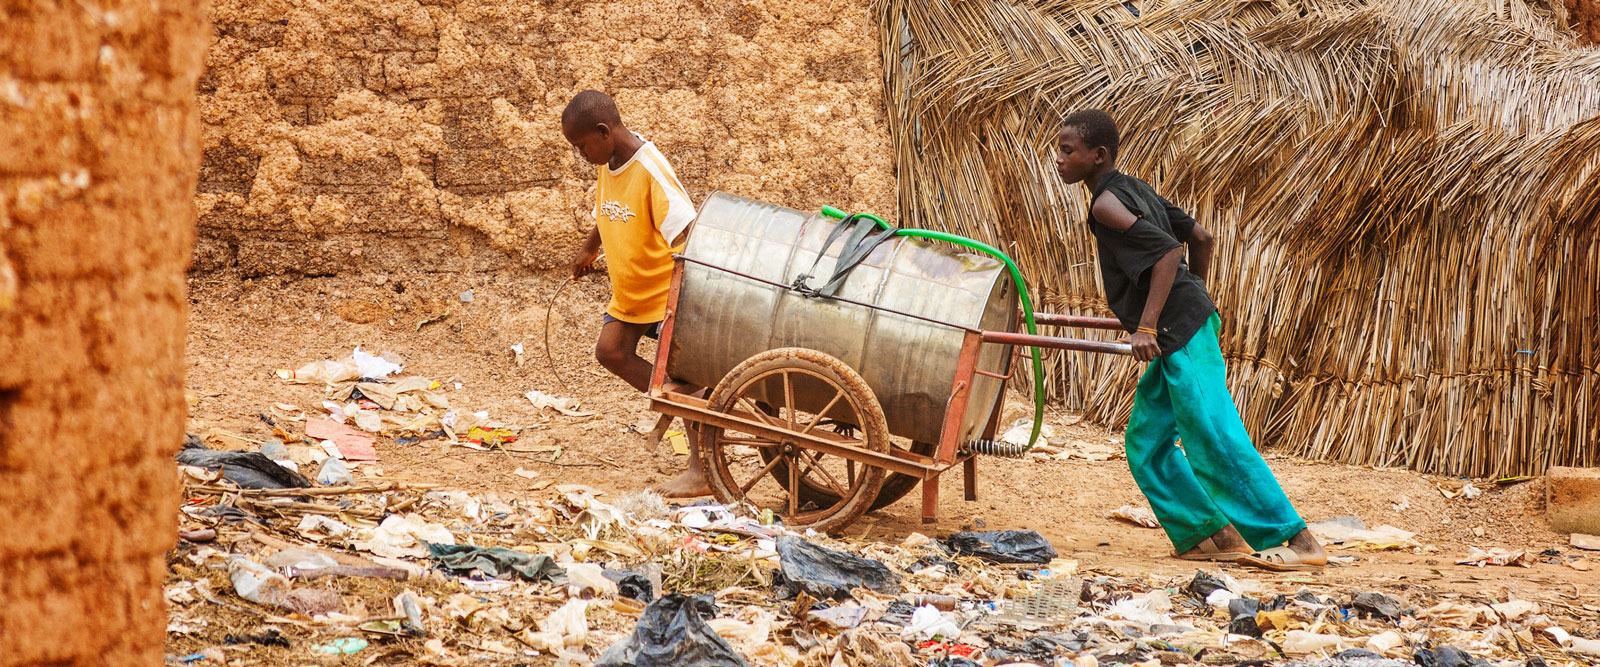 Two young boys towing a can of water in the slums of Ouagadougou in order to distribute water to the inhabitants, Burkina Faso.